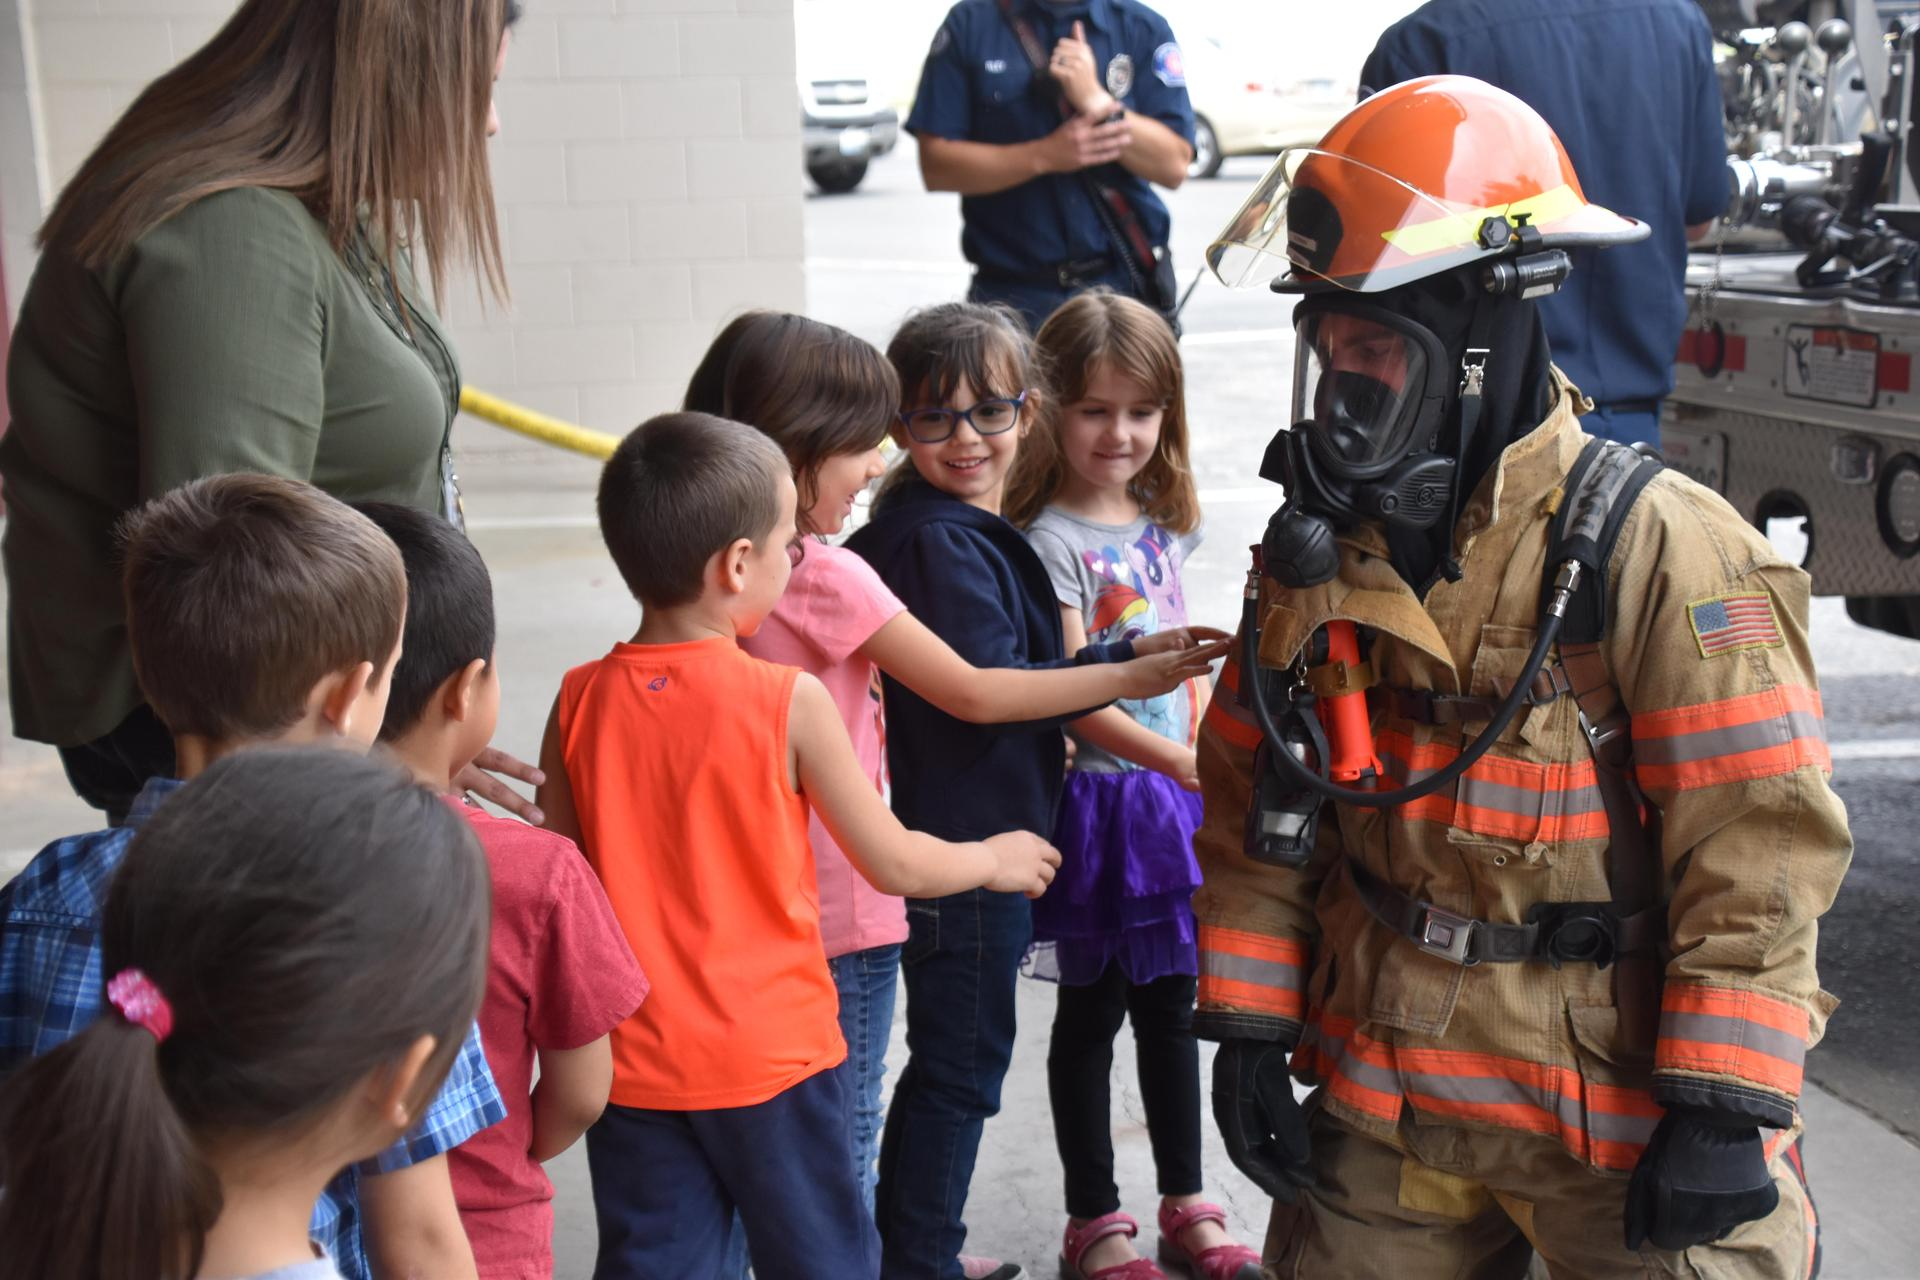 Kids getting to check out the firefighter special gear.